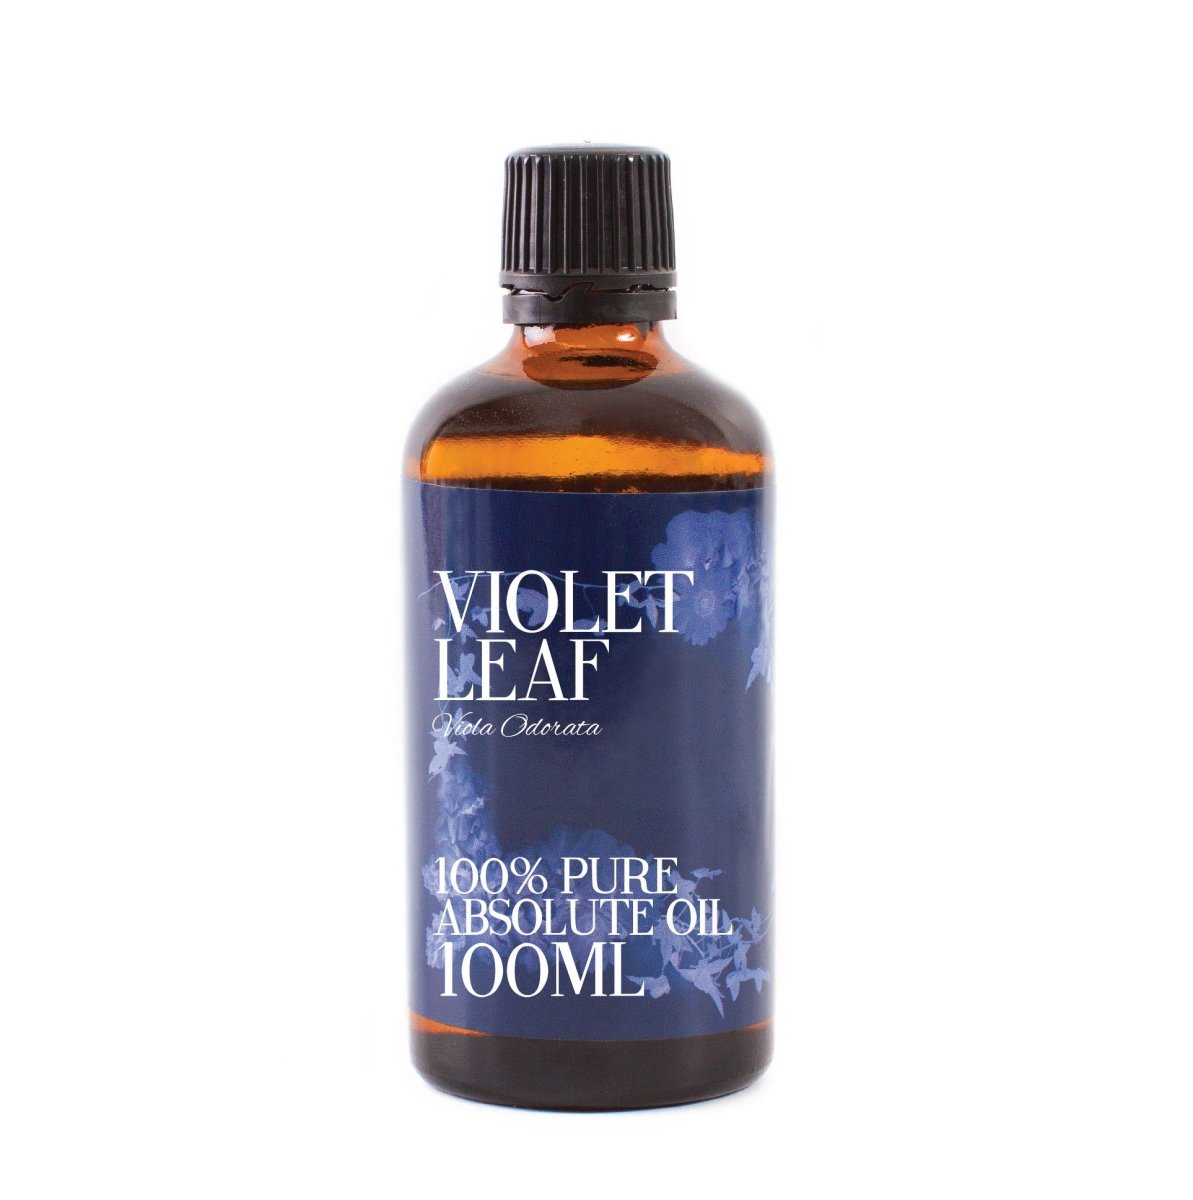 Violet Leaf - Absolute Oil - Mystic Moments UK